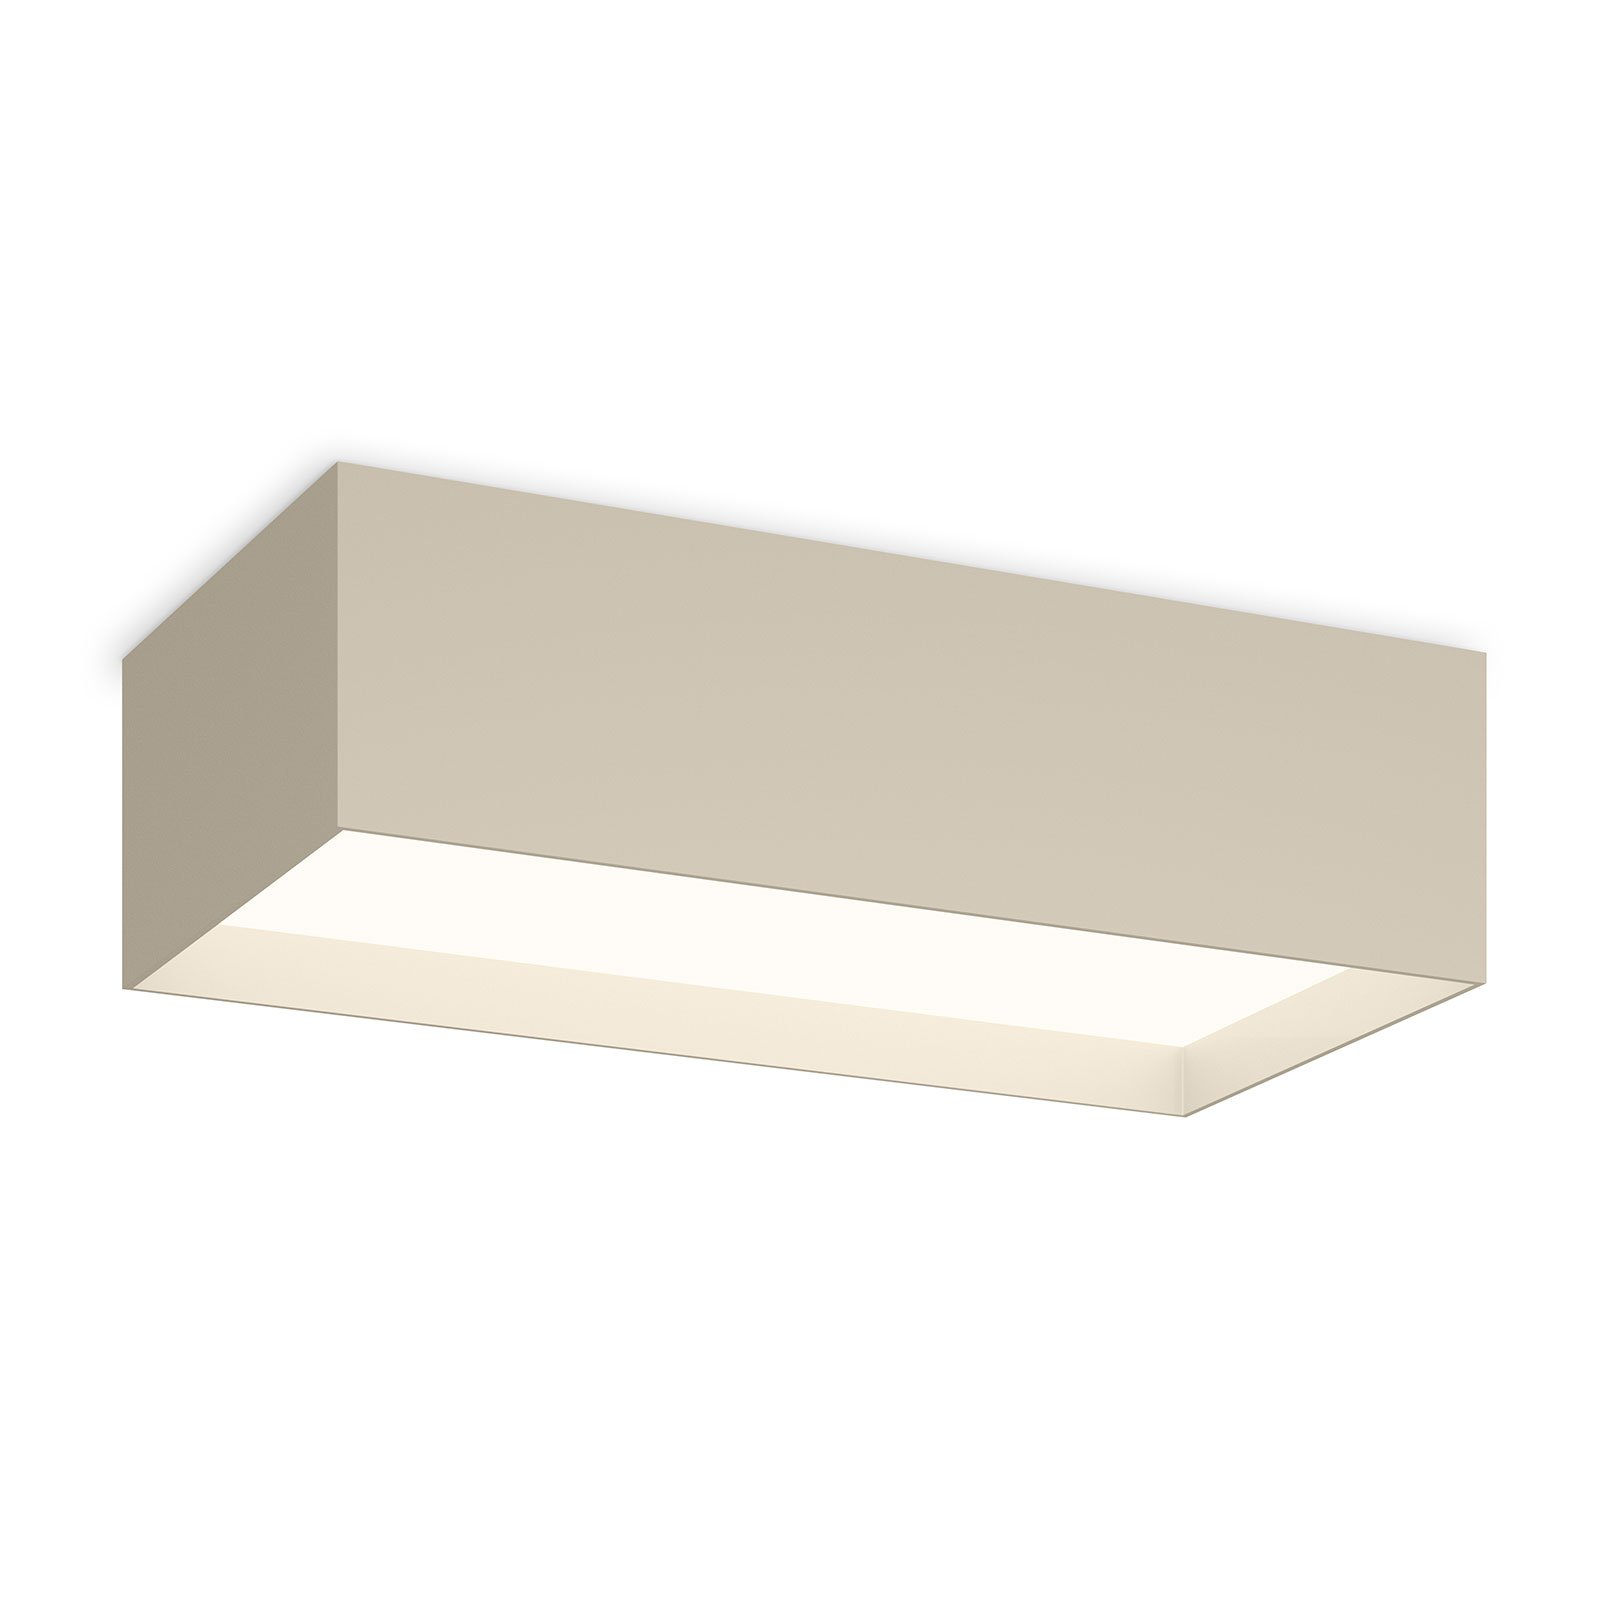 Vibia Structural 2634 taklampe 48 cm, lysegrå